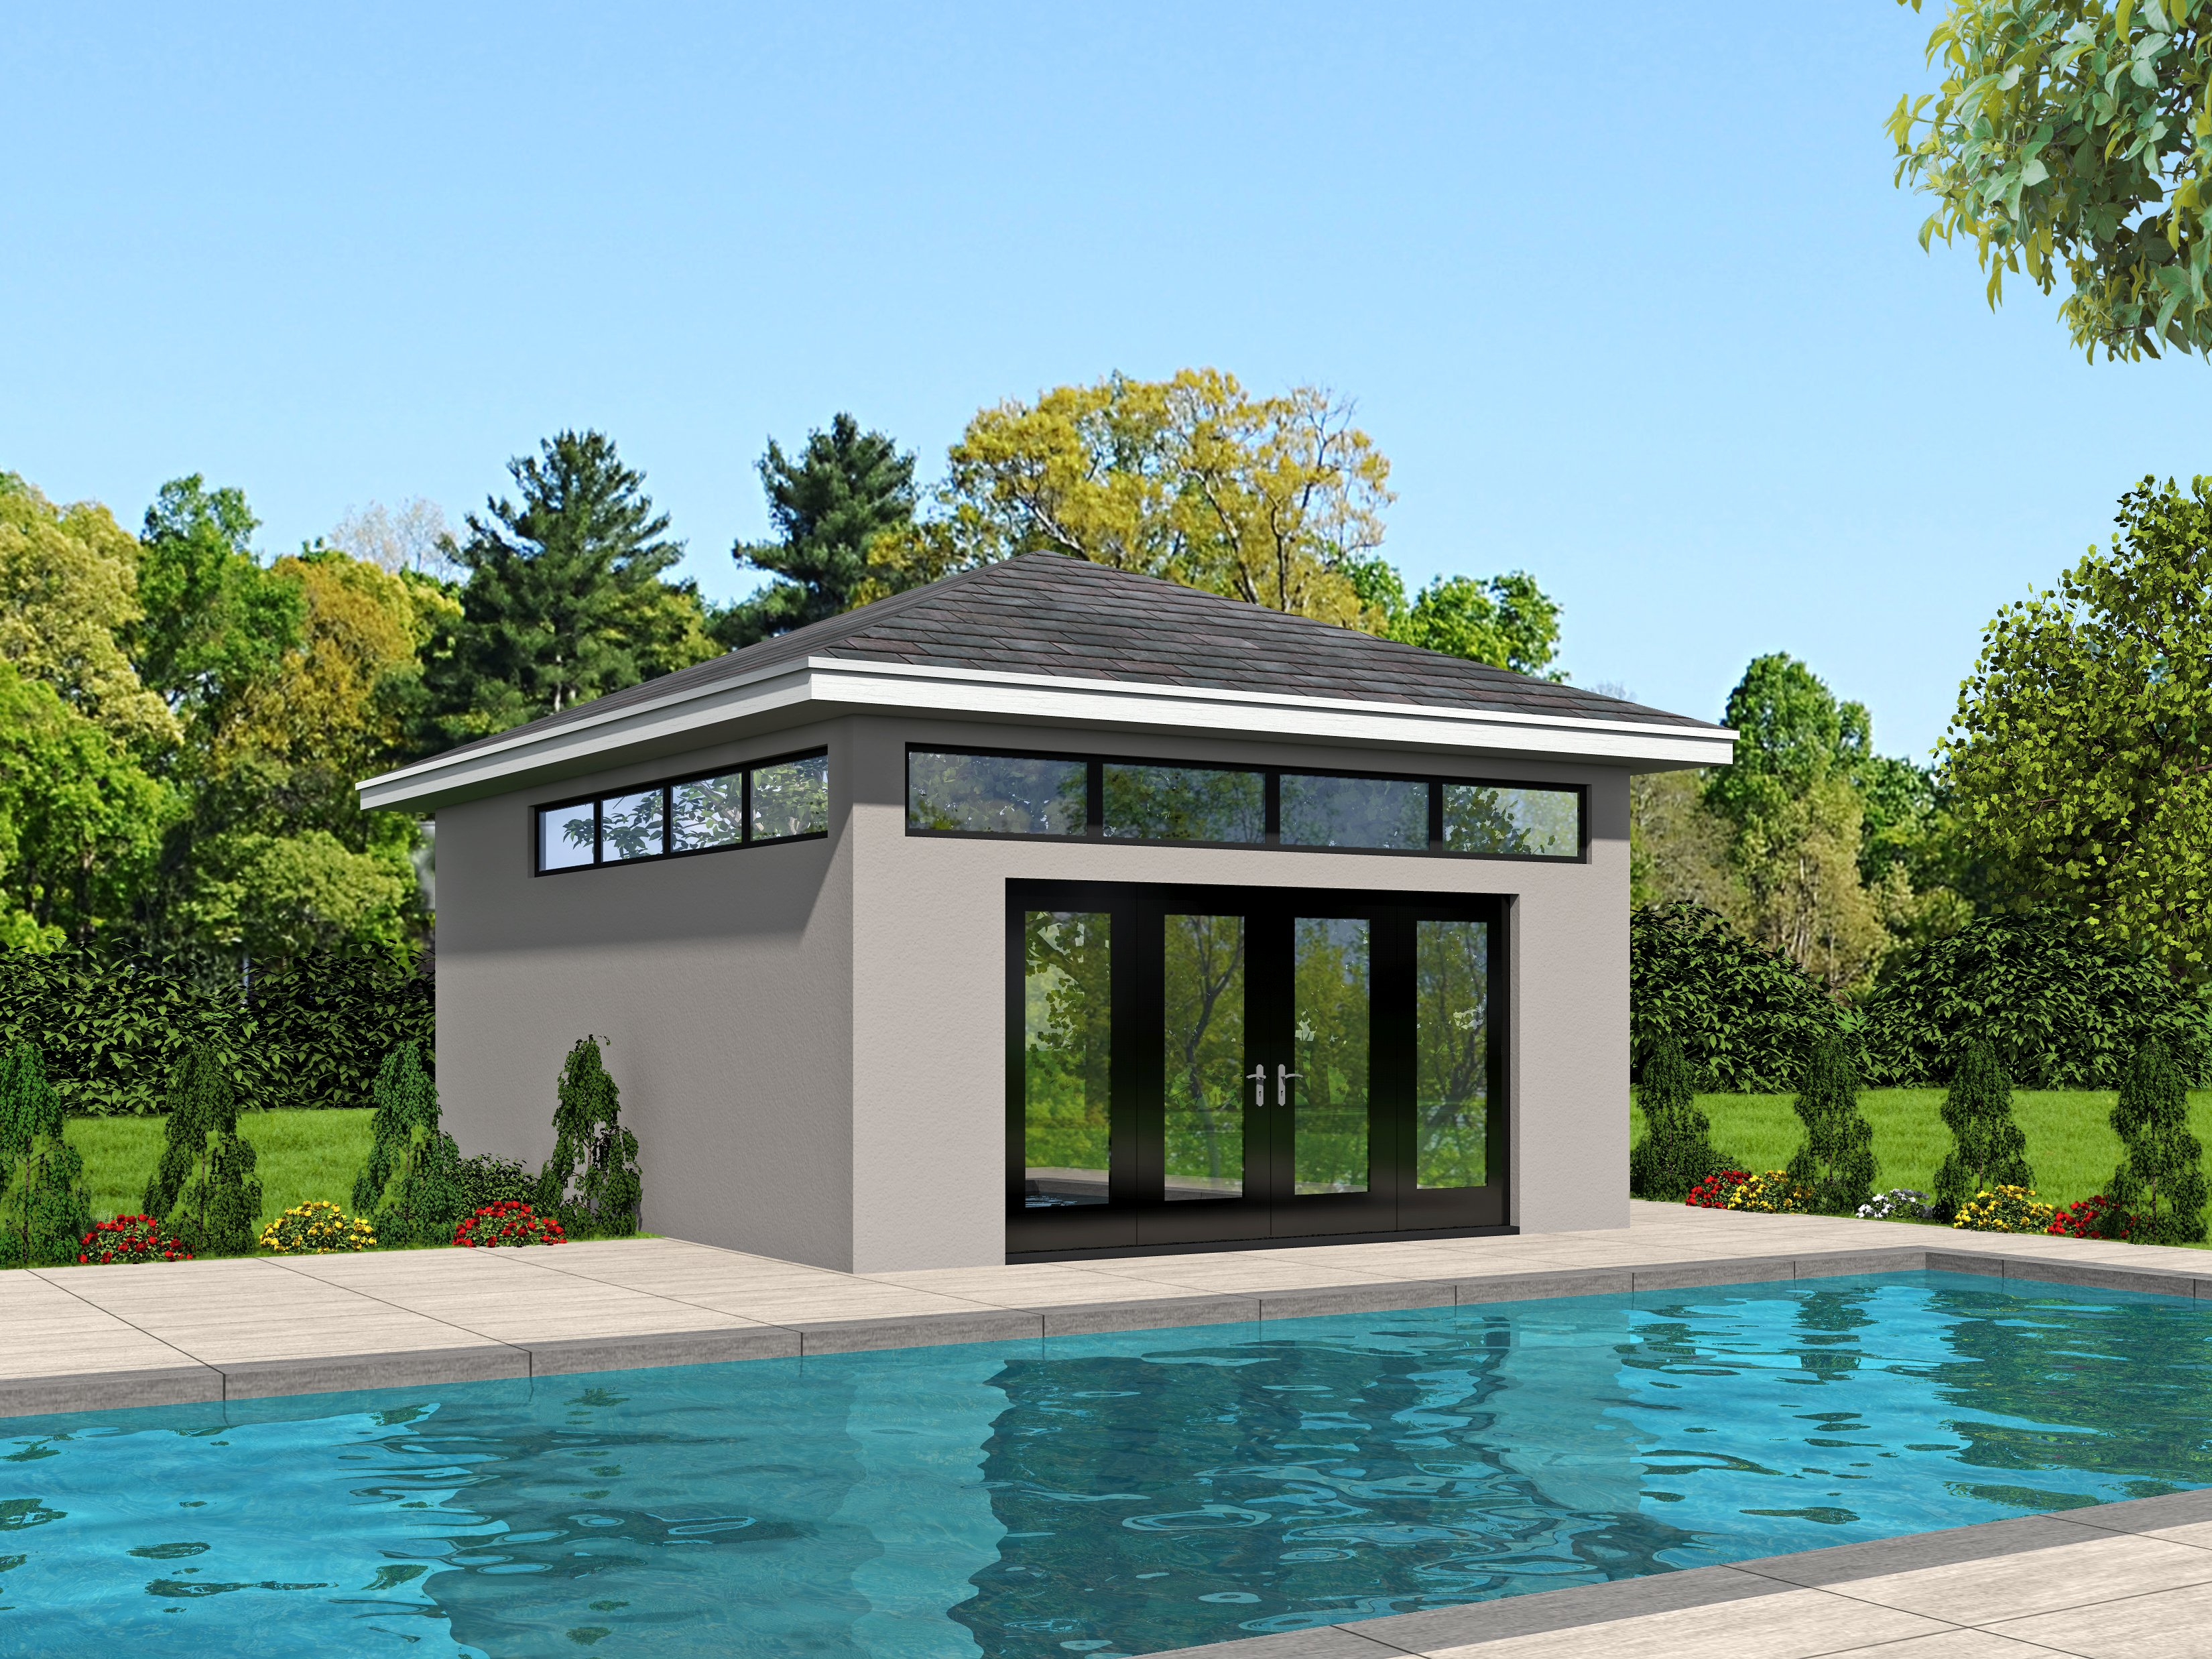 Pool house plans house plans plus for Pool house plans with garage